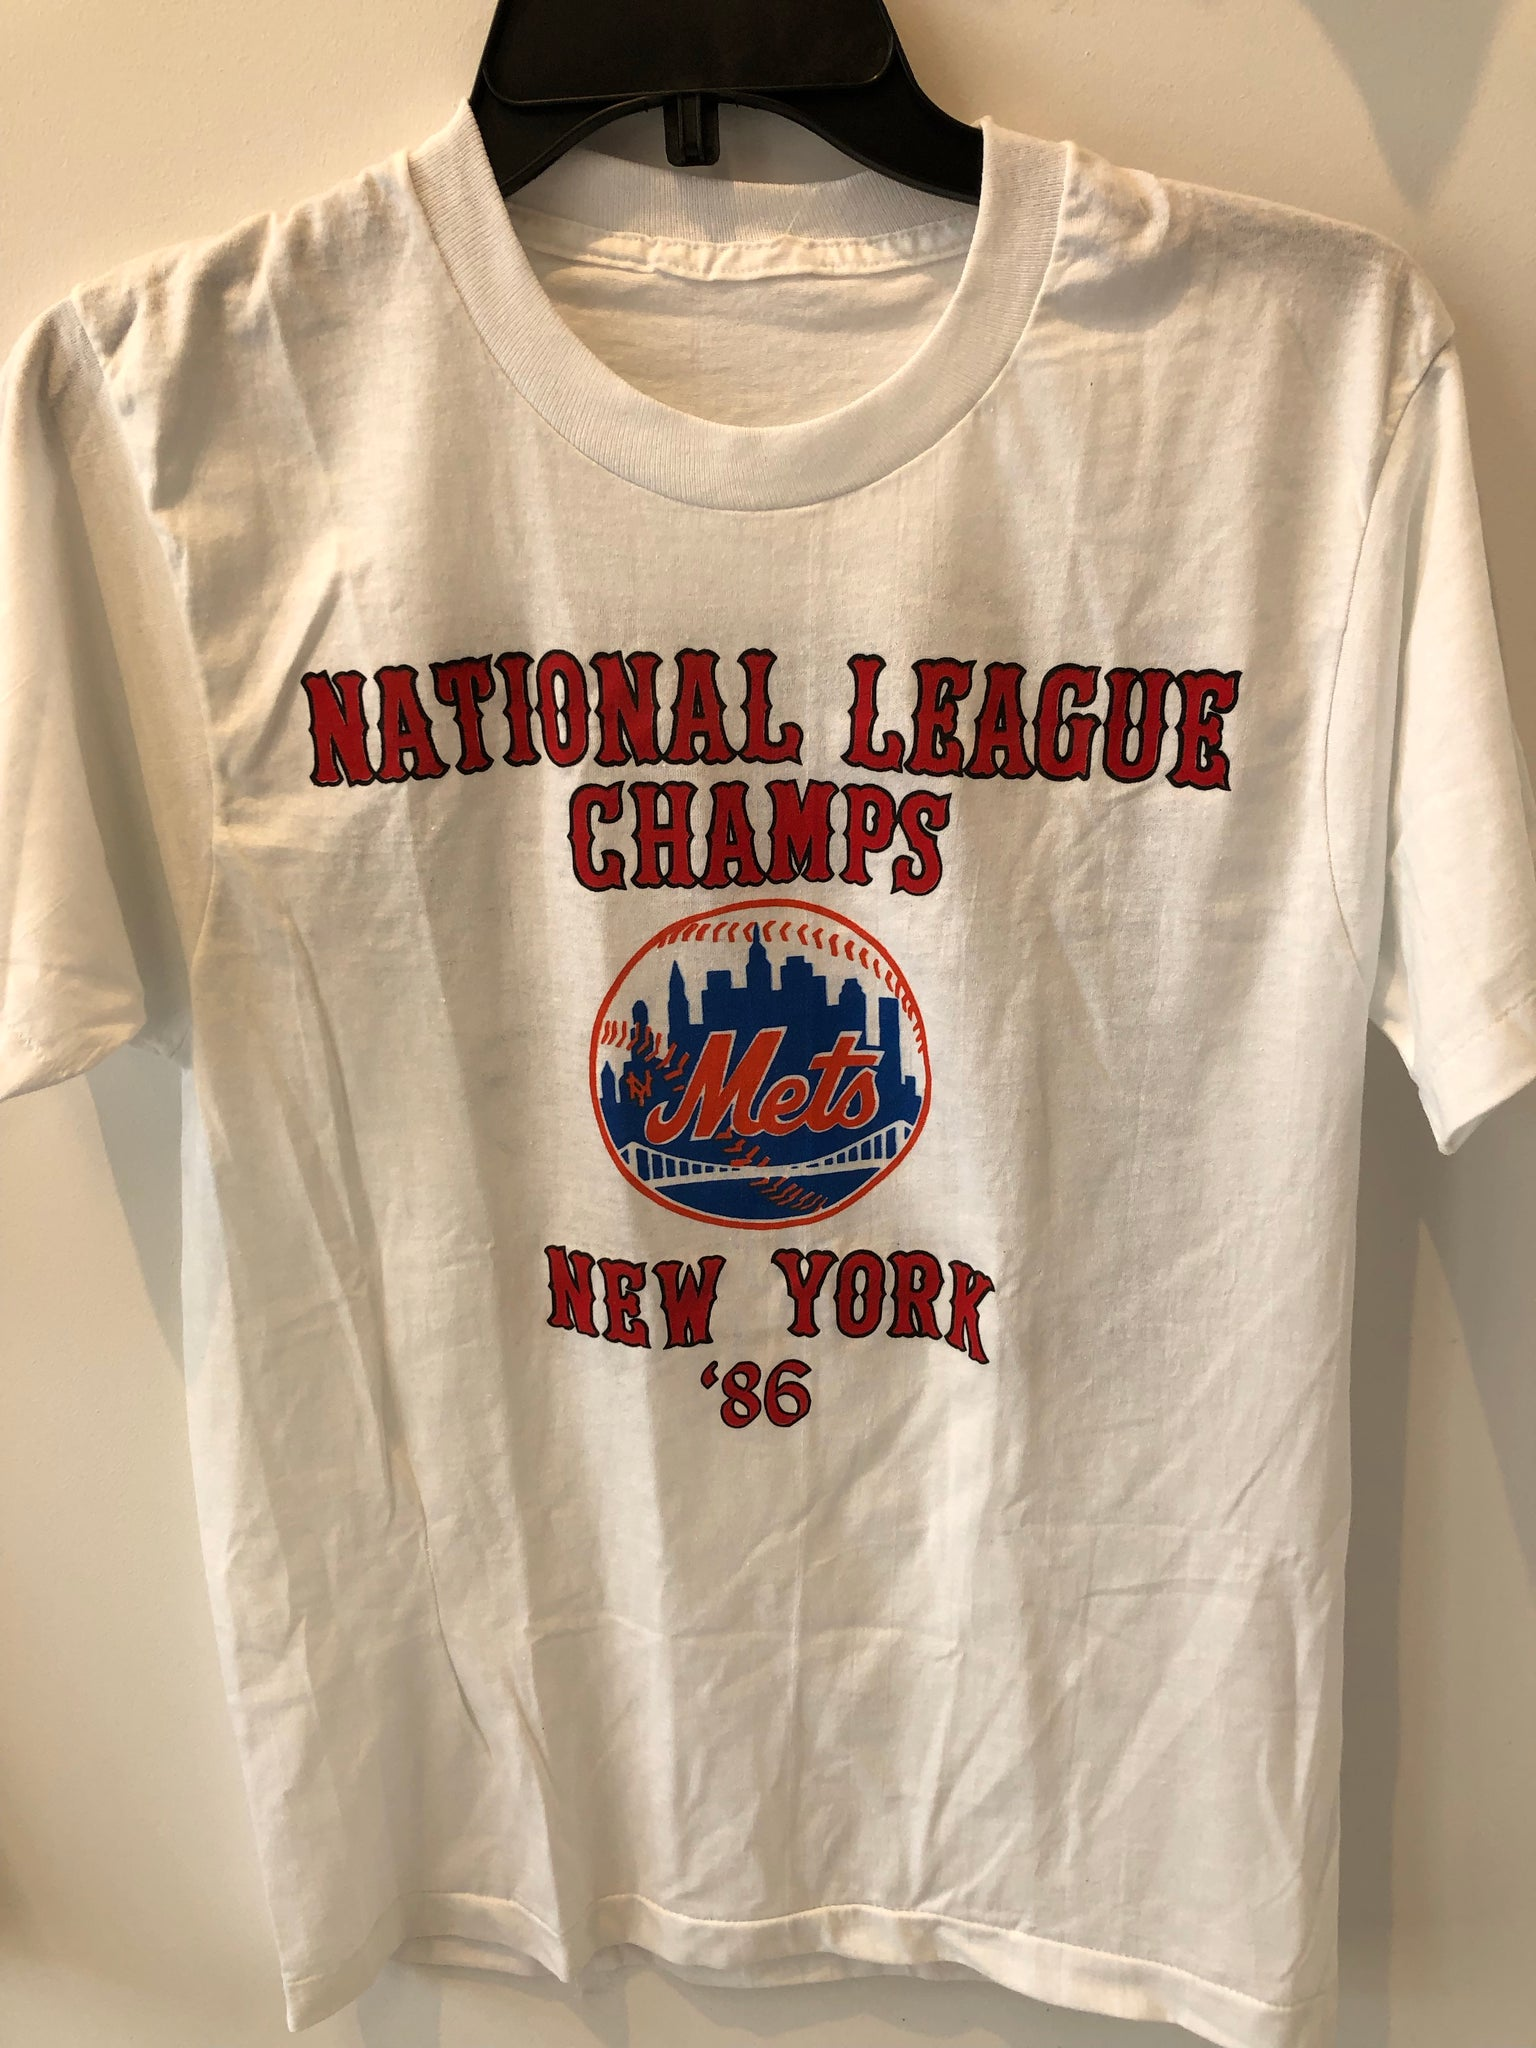 Vintage Perfect Condition 1986 National League Champs New York Mets T Shirt Fits Small